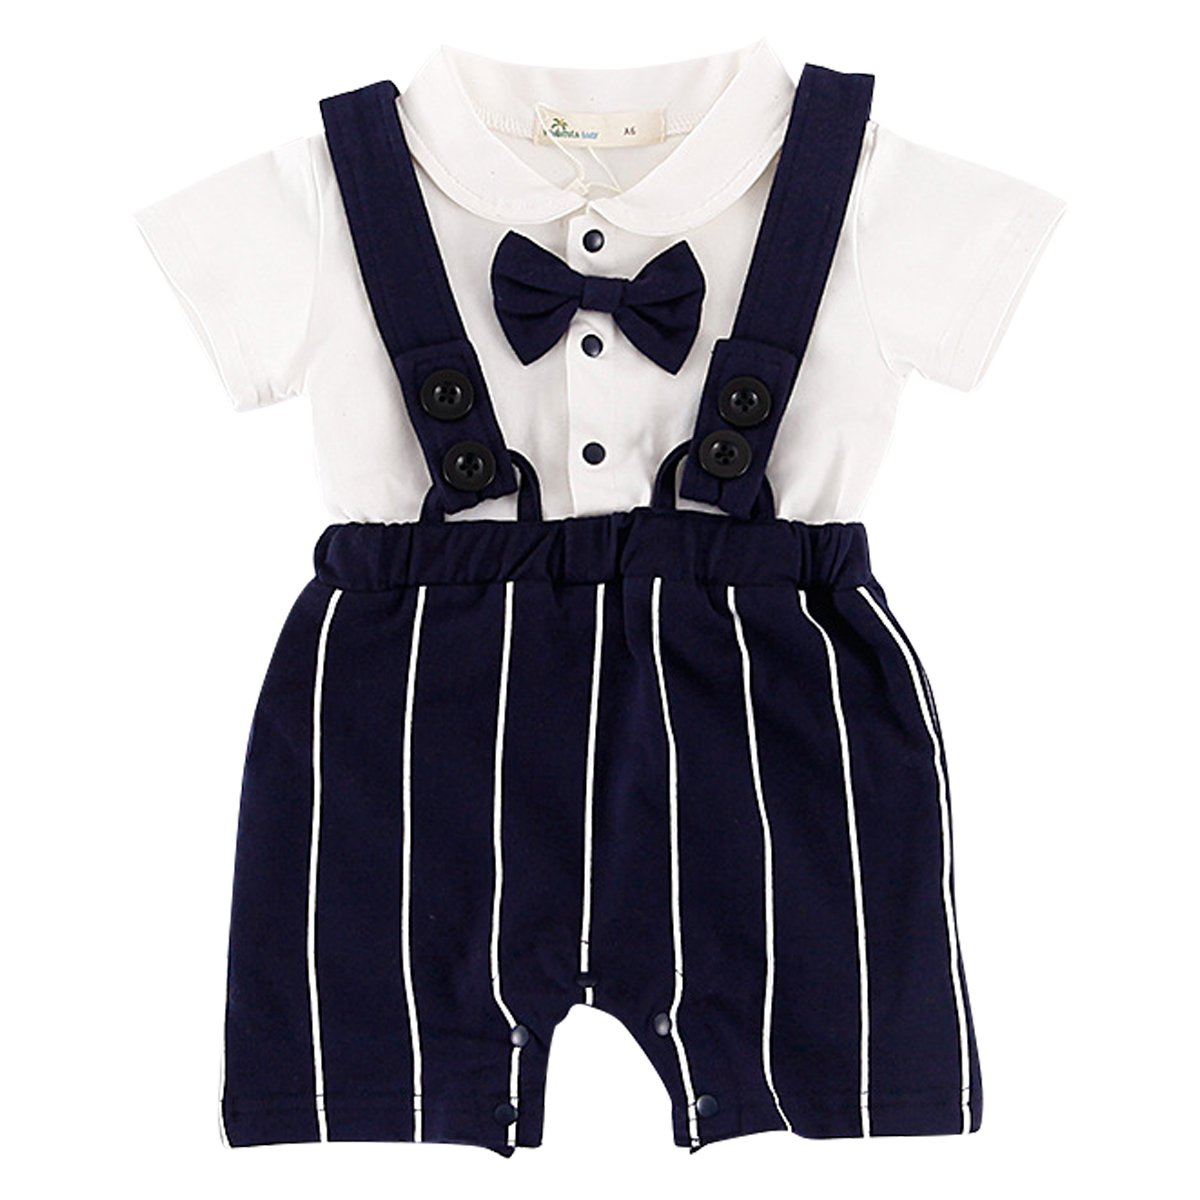 Bebone Baby Boys Outfits Clothes Wedding Gentleman Romper Jumpsuit Bodysuit